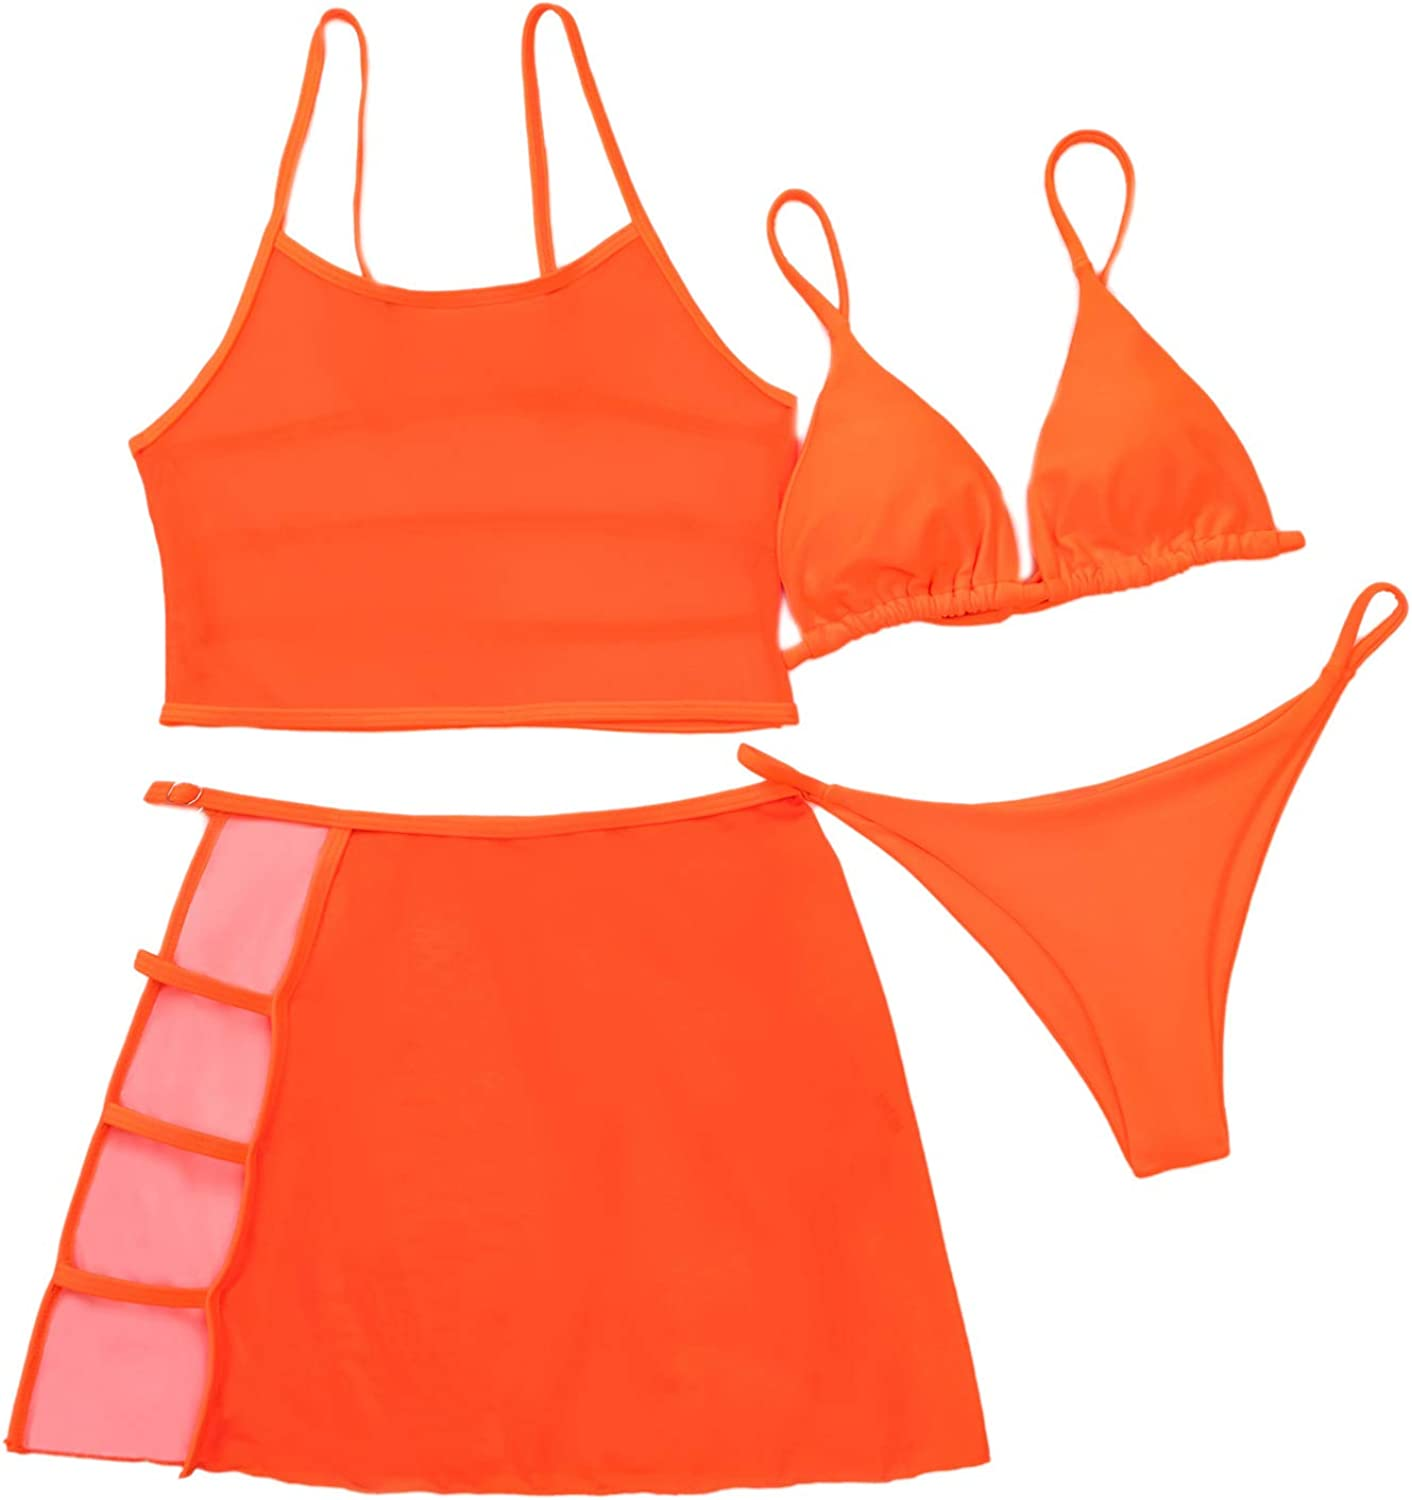 SOLY HUX Women's Triangle Bikini Bathing Suits with Cut Out Mesh Skirt 4 Piece Swimsuits